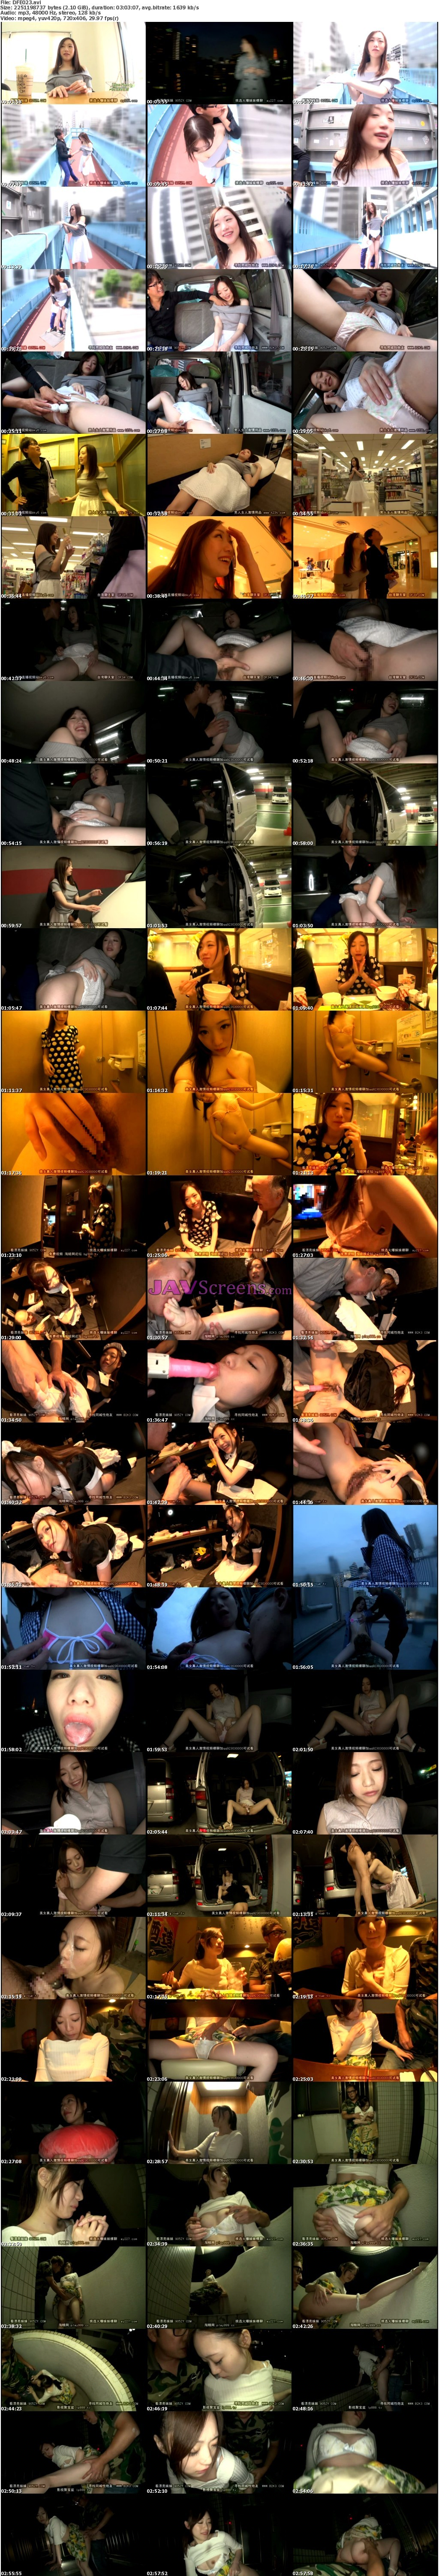 DFE-023.jpg - JAV Screenshot